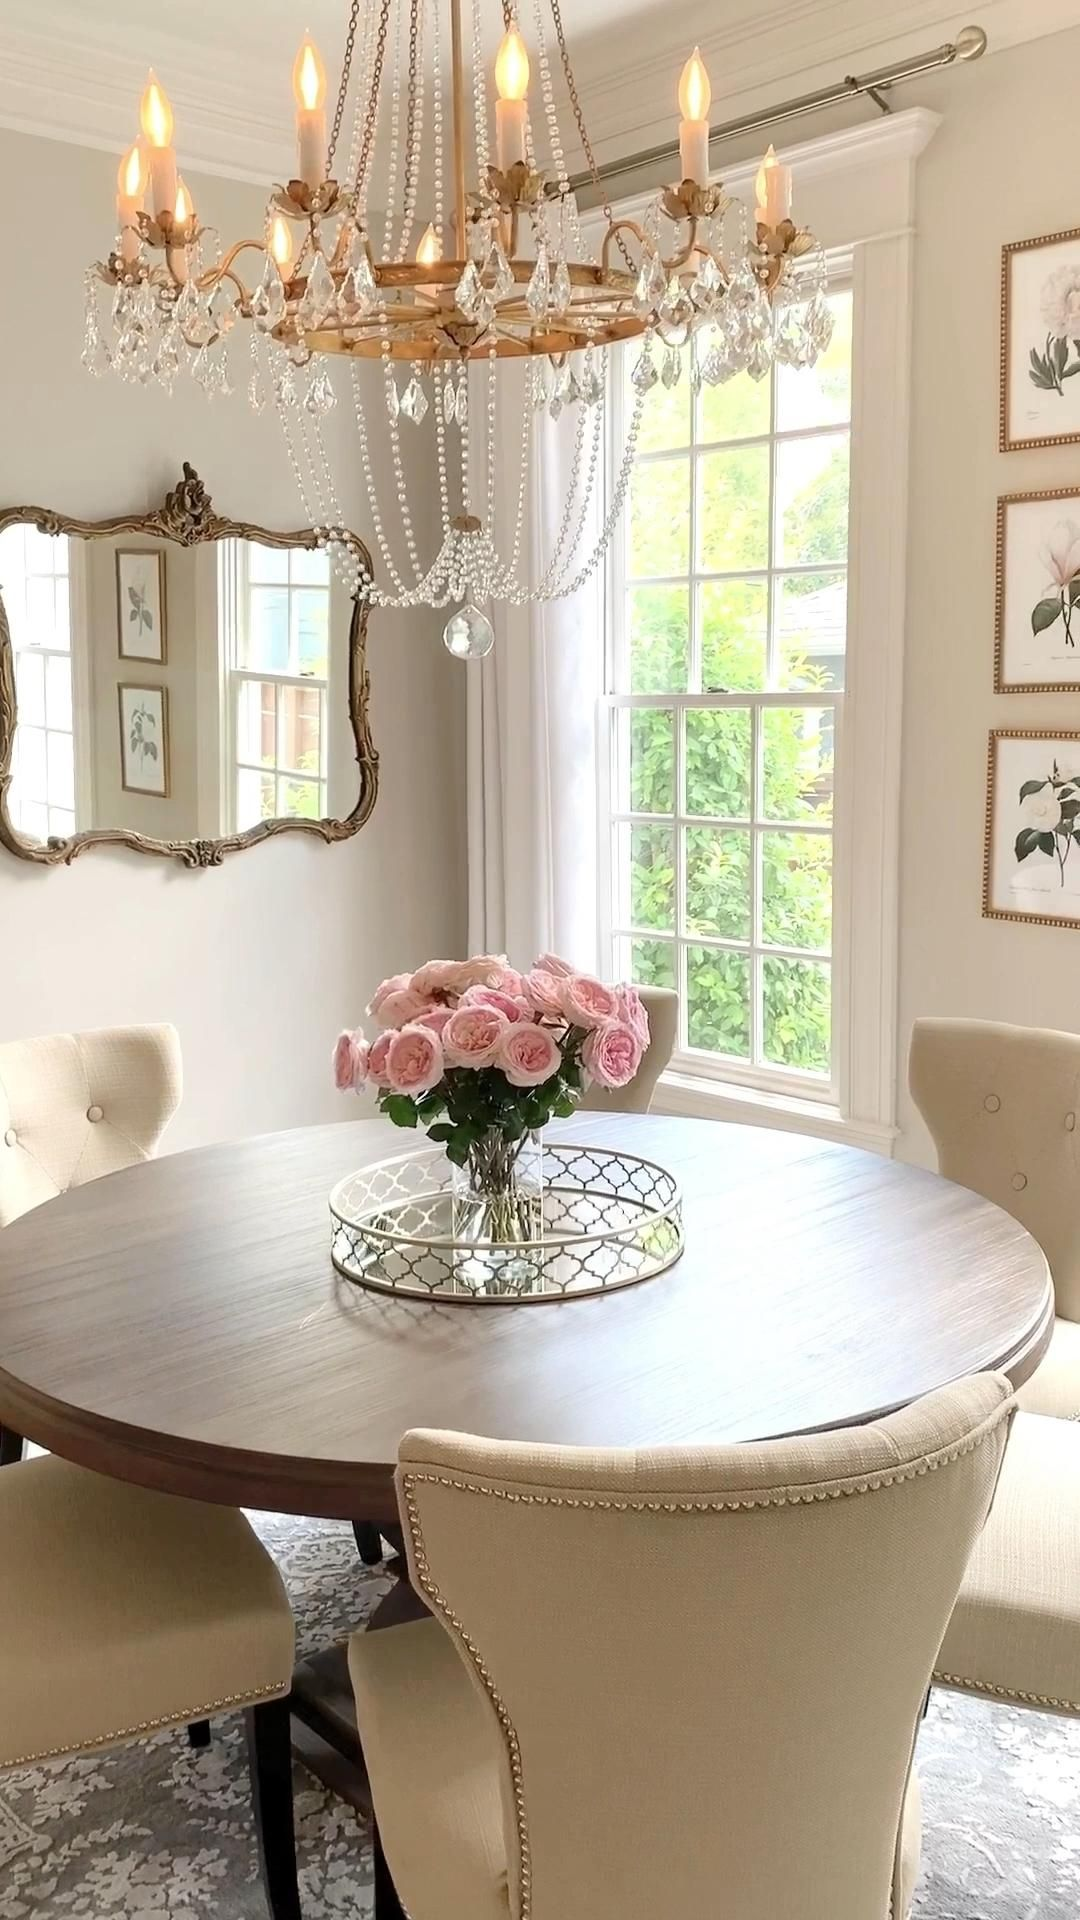 Photo of Formal dining room with fresh garden roses